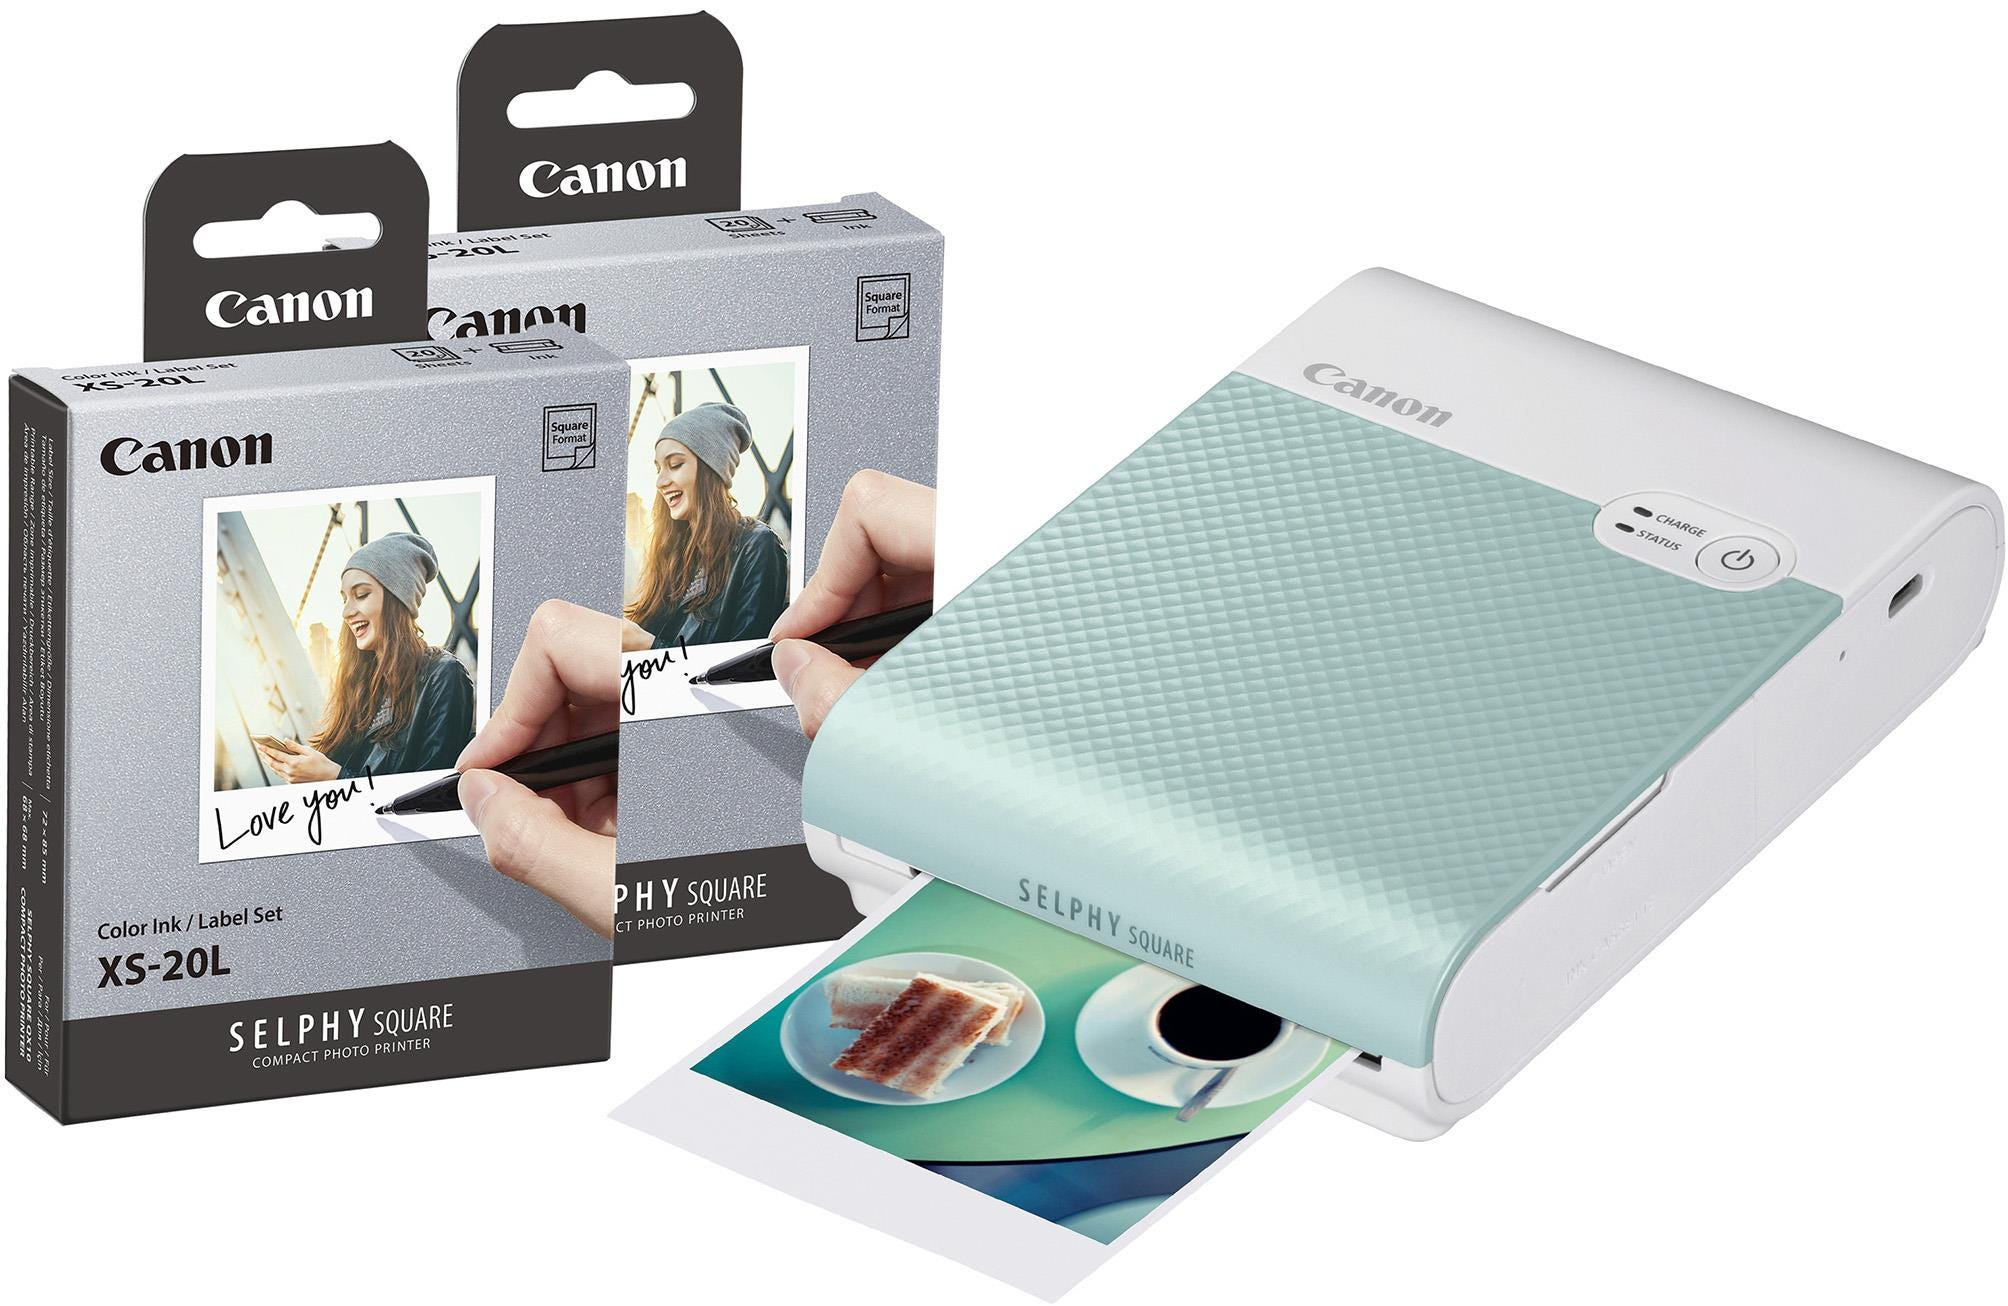 Canon Selphy Square QX10 Instant Photo Printer including 40 Shots - Green